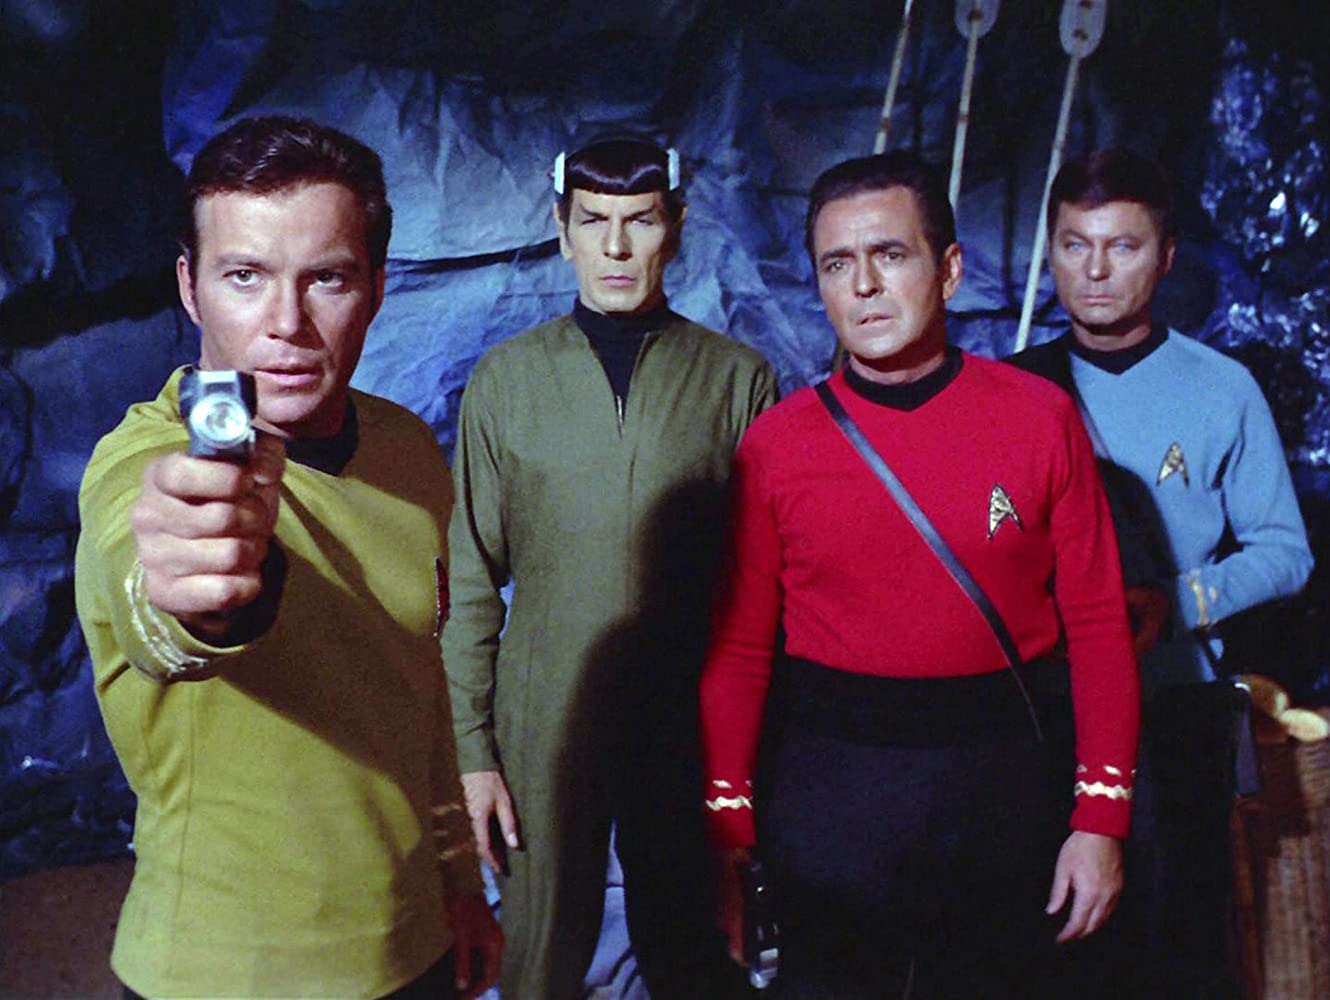 Leonard Nimoy William Shatner James Doohan and DeForest Kelley in Star Trek 1966